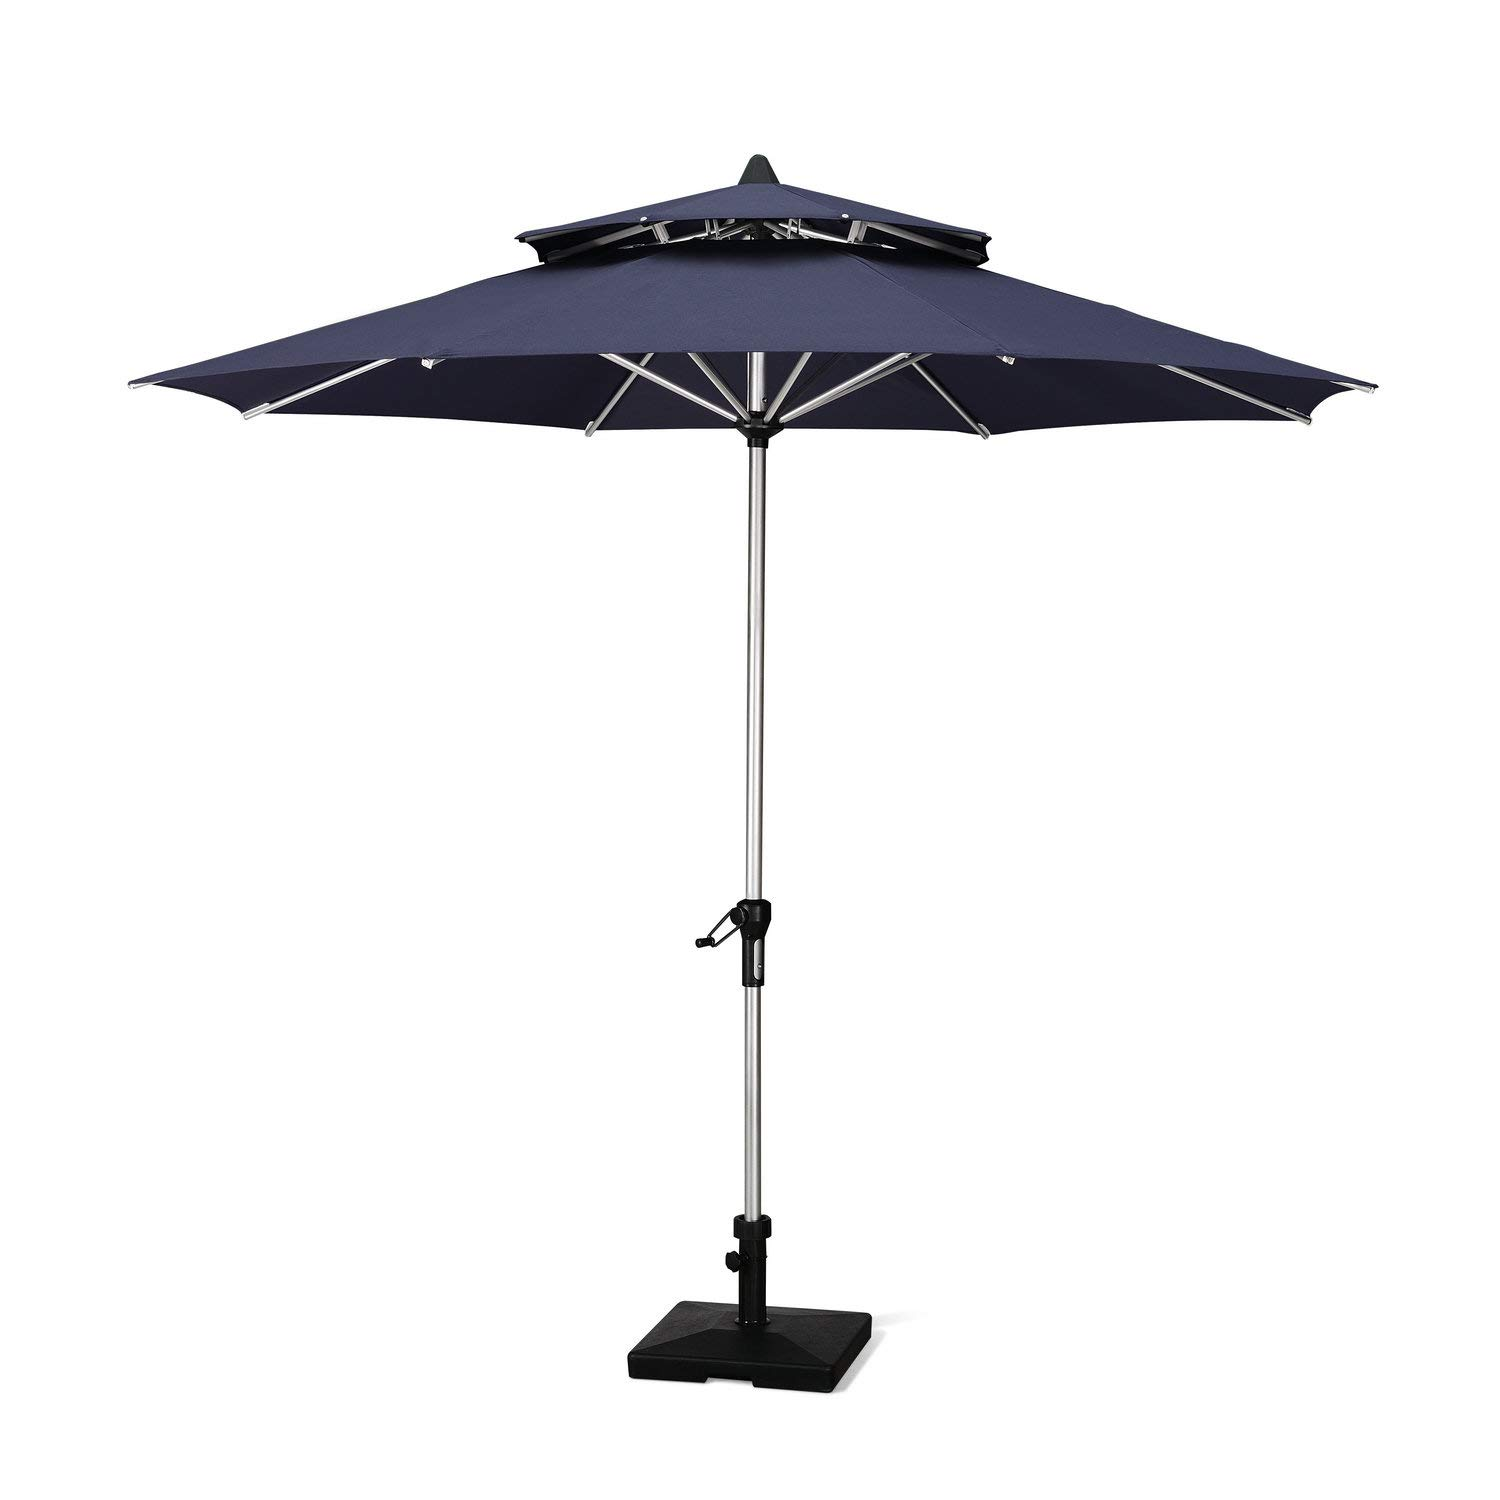 PURPLE LEAF 9 Feet Double Top Deluxe Patio Umbrella Outdoor Market Umbrella Garden Umbrella, Navy Blue